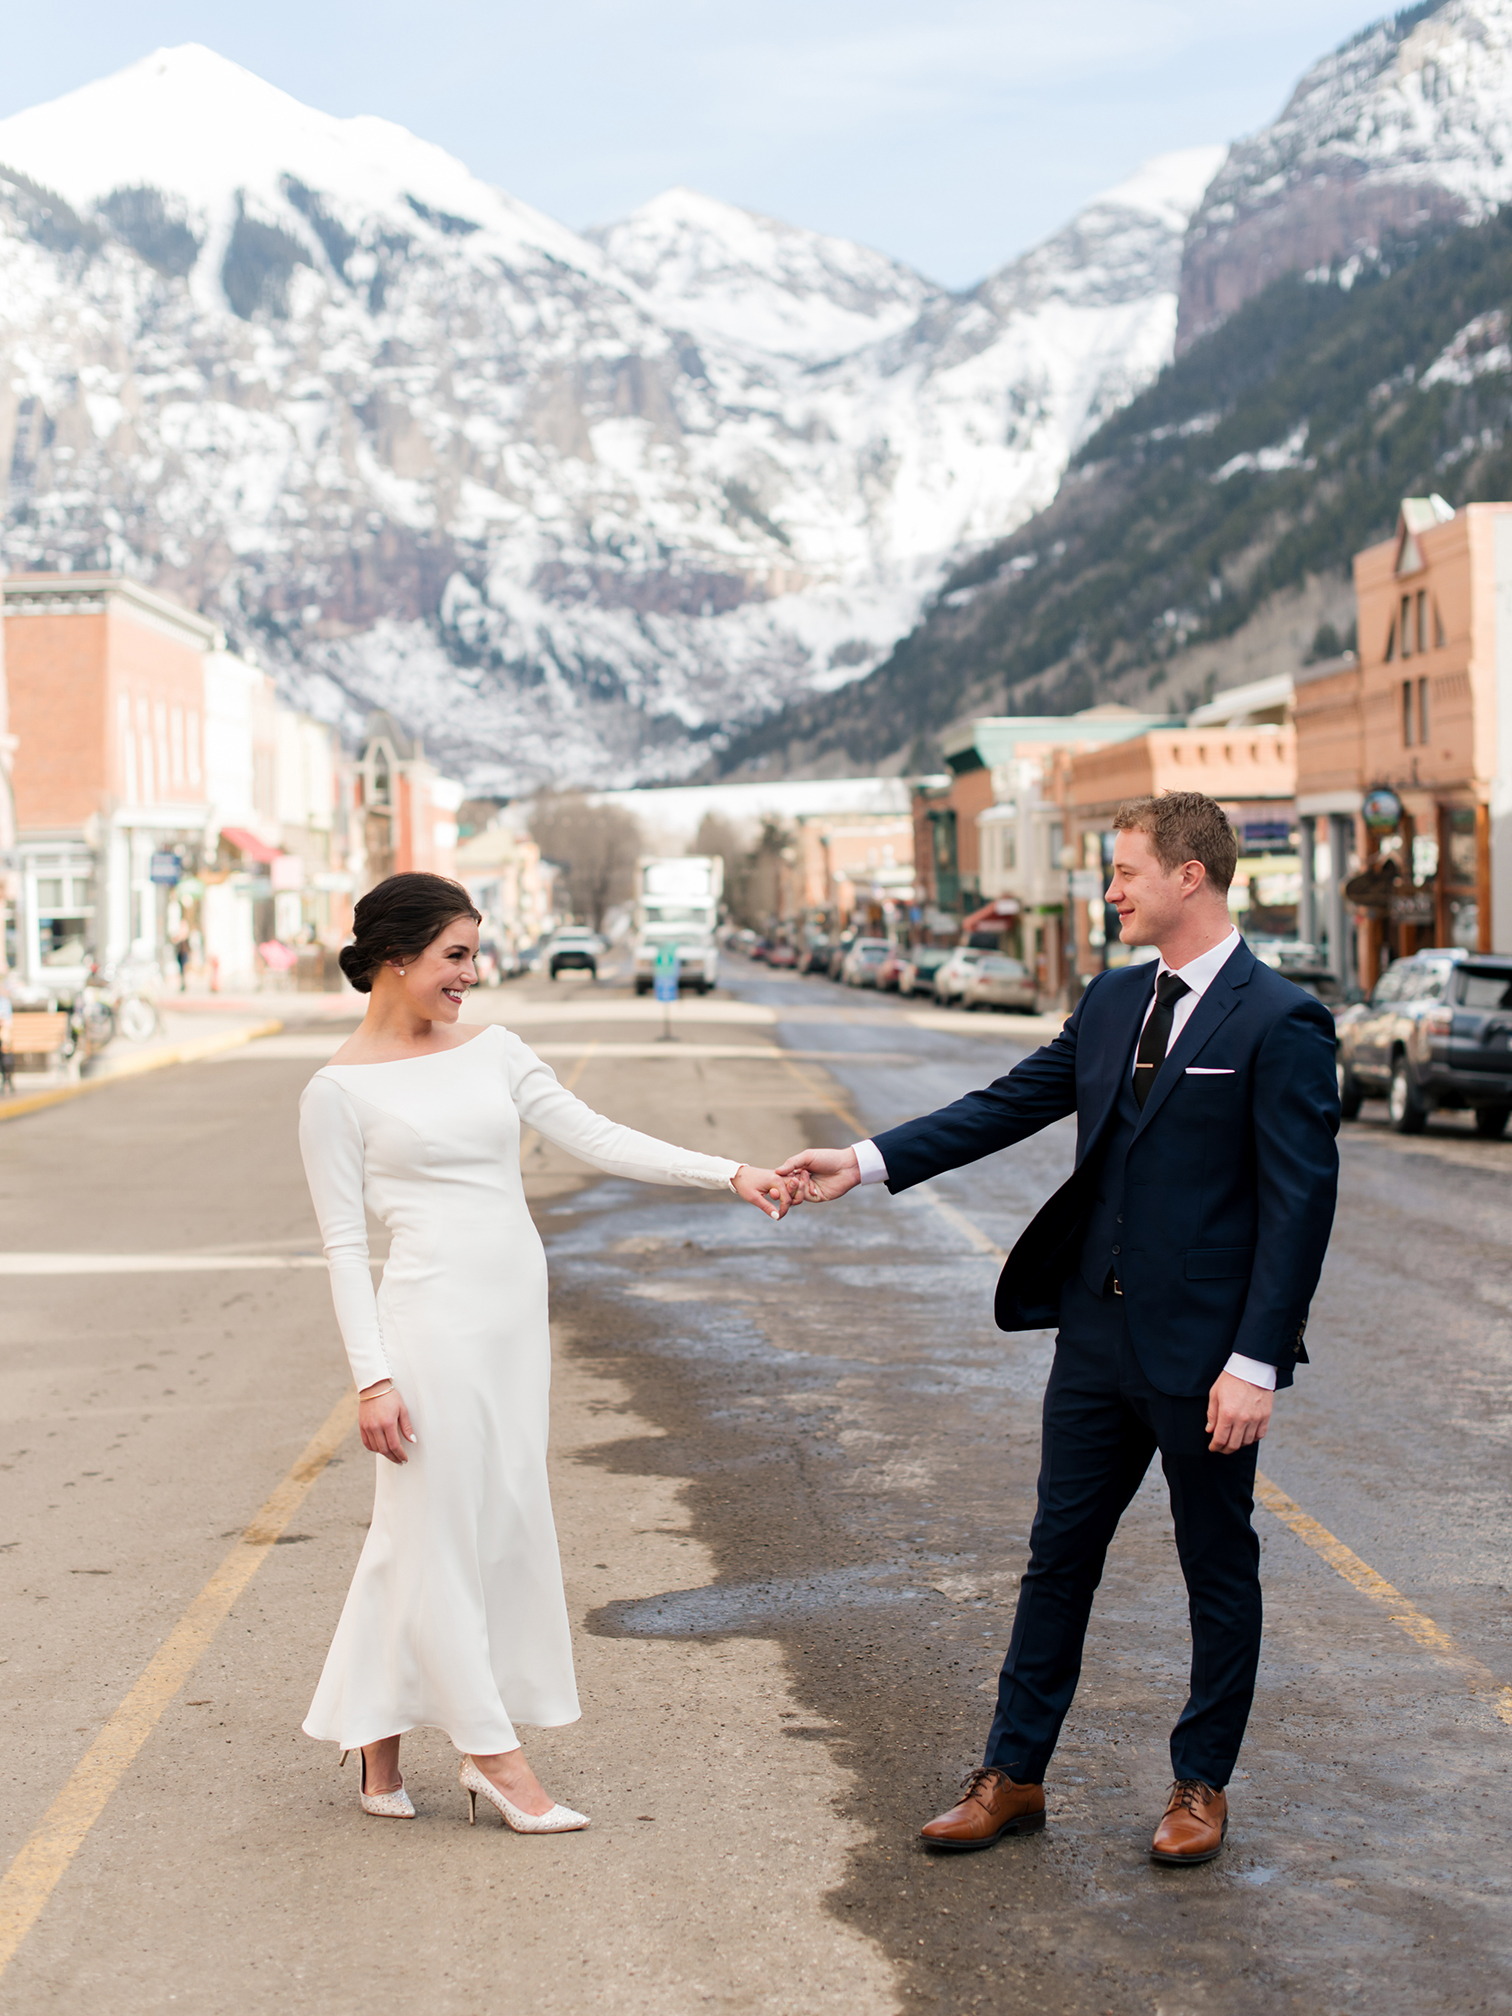 Telluride Wedding, Colorado Destination Wedding, Colorado Photographer, Colorado Wedding Photography, Portraits